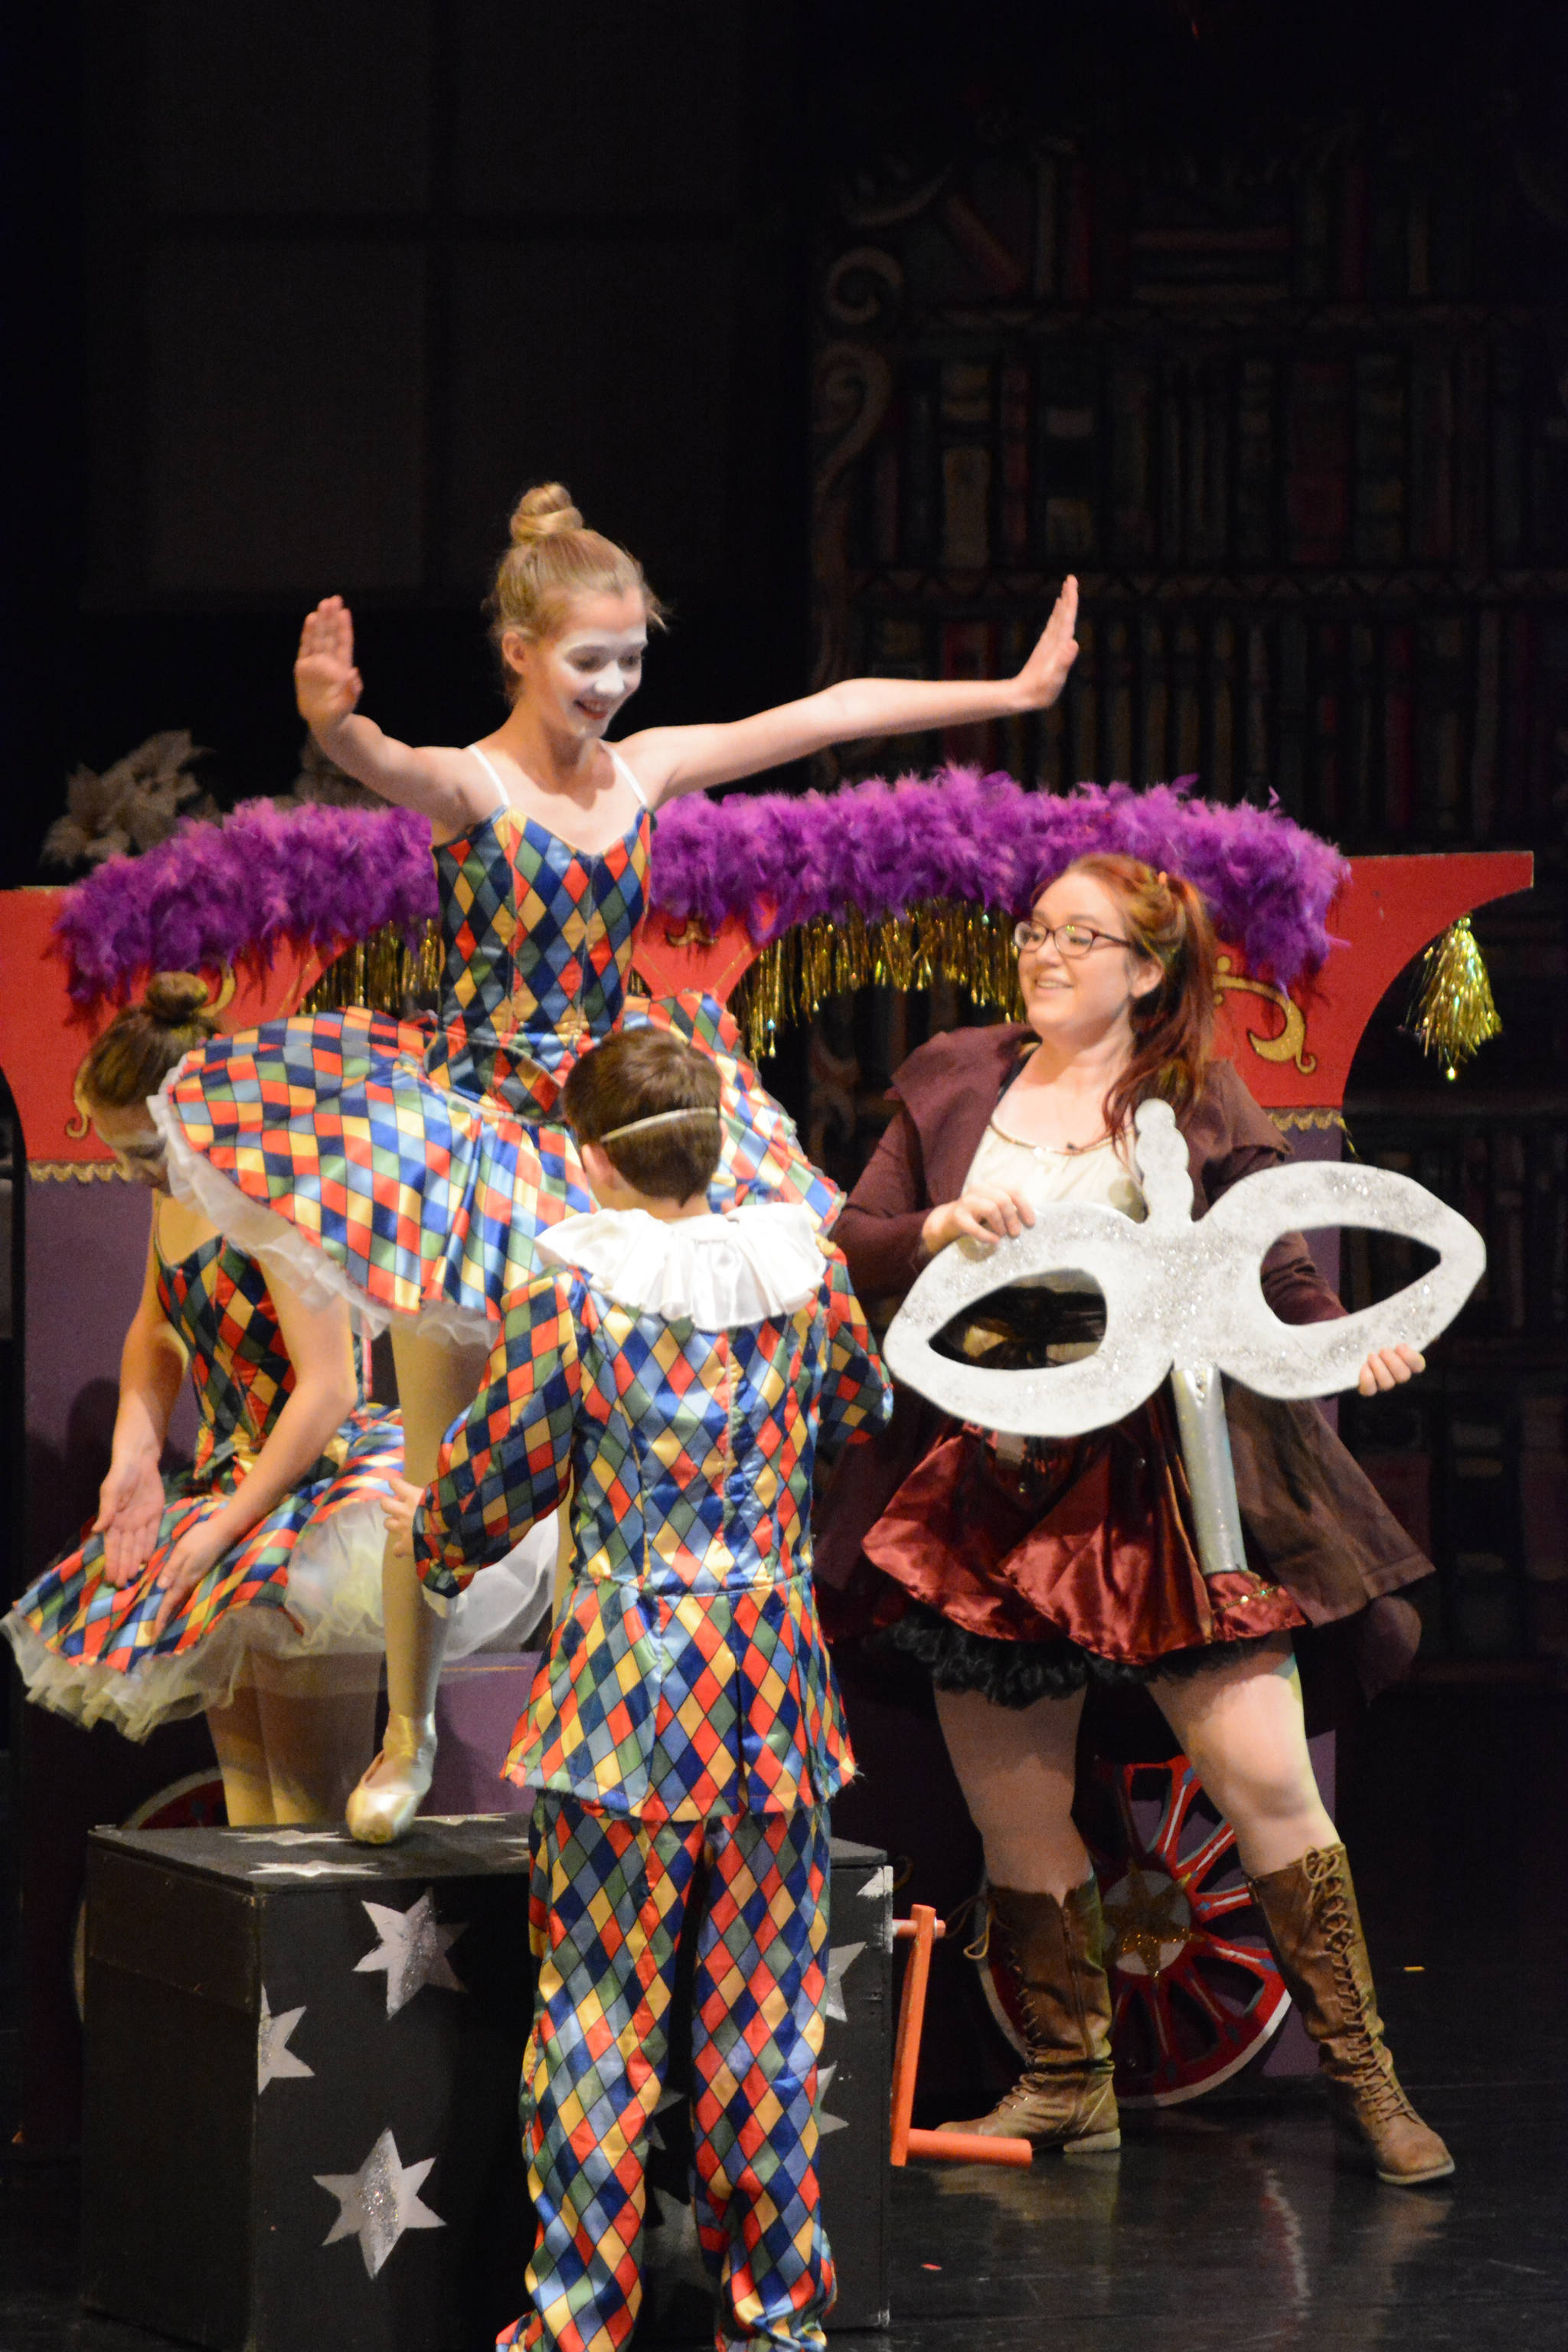 Hannah Heimbuch as Aunt Drosselmeyer, far right, rehearses a scene with Serena Funkhauser, left, Ava Halstead, center, and Lance Seneff, right, as the harlequin toys at the Mariner Theatre Friday, Nov. 24, 2017 in Homer, Alaska for the Nutcracker Ballet. (Photo by Michael Armstrong, Homer News)